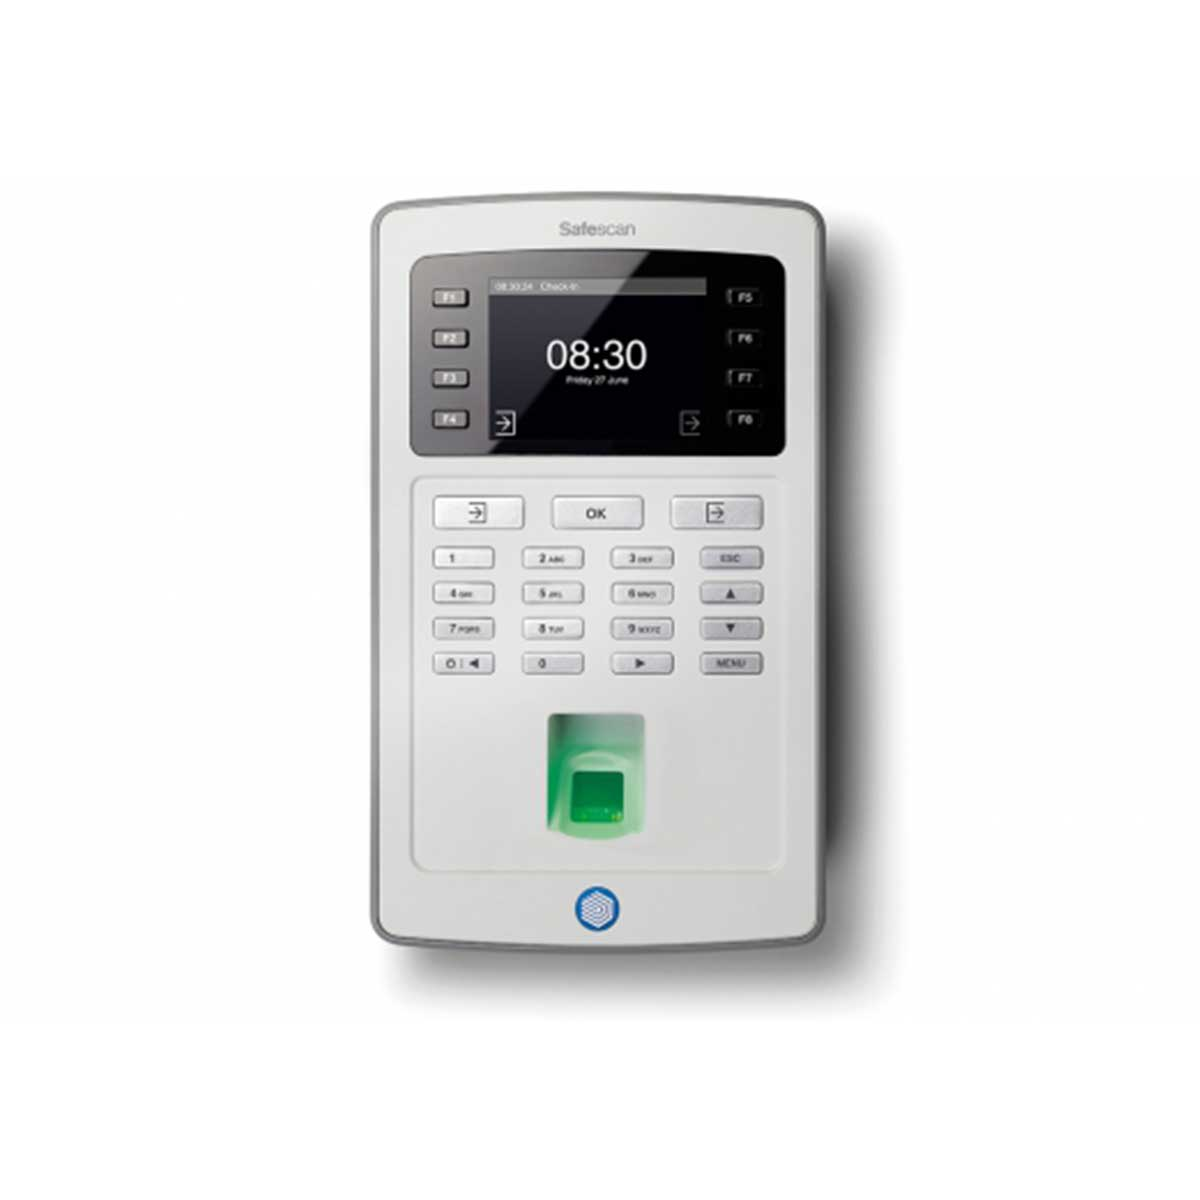 Safescan TA-8025 Time Attendance System with Fingerprint Sensor and Wi-Fi - Grey